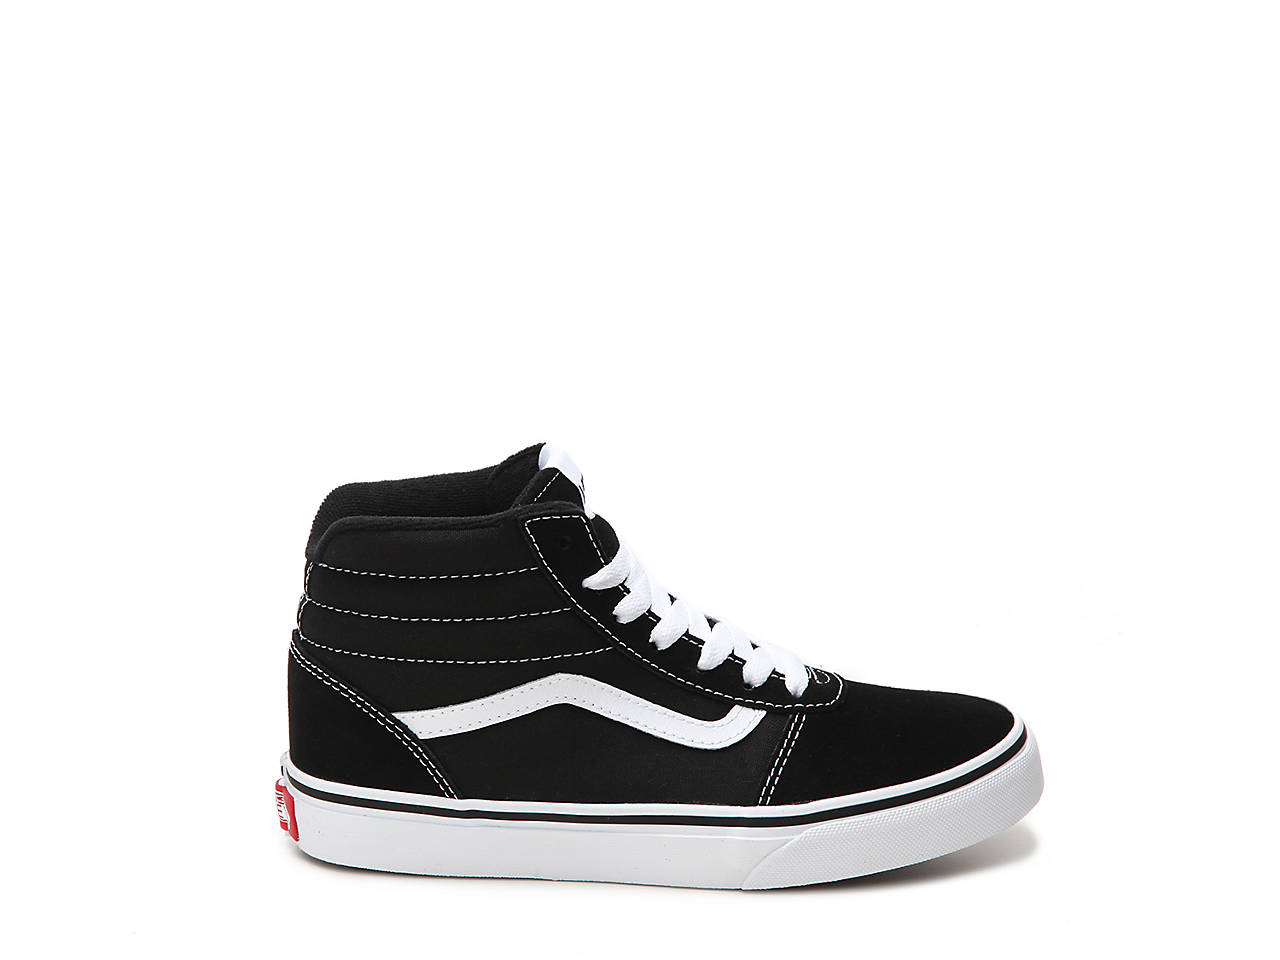 0b28c4ce3f Vans Ward Toddler   Youth High-Top Sneaker Kids Shoes